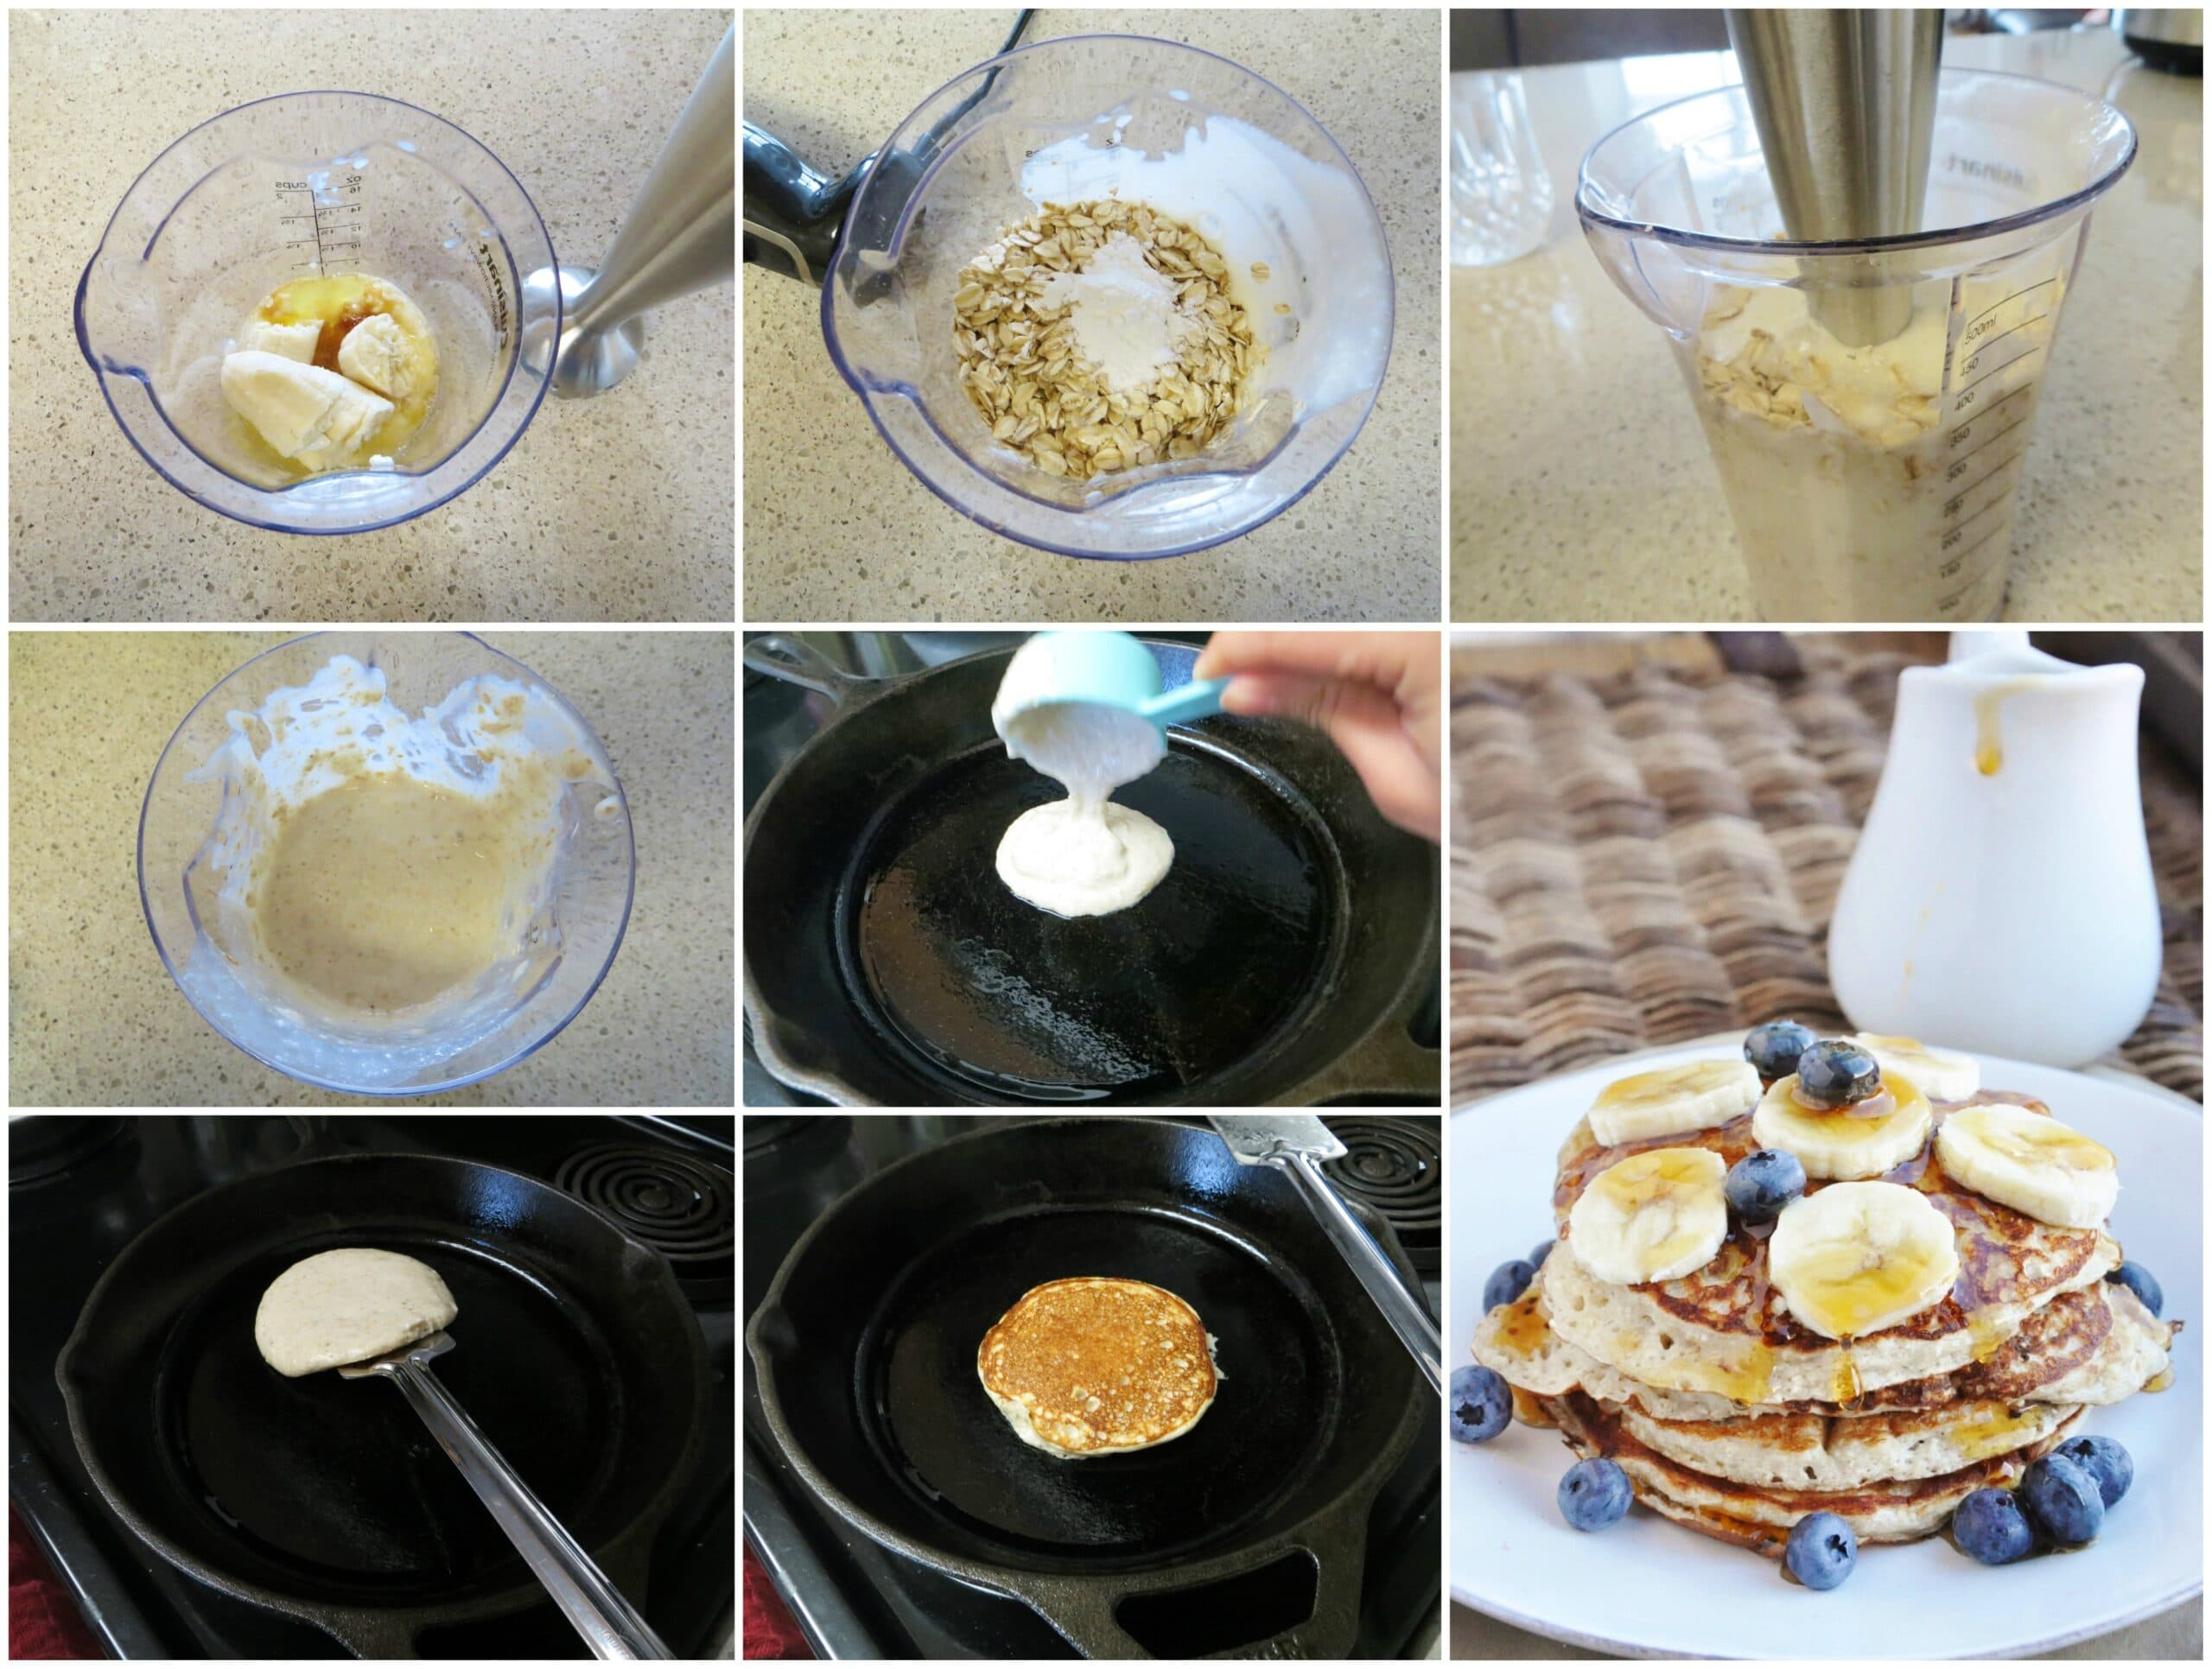 HIgh Protein Banana Bread Pancakes step by step